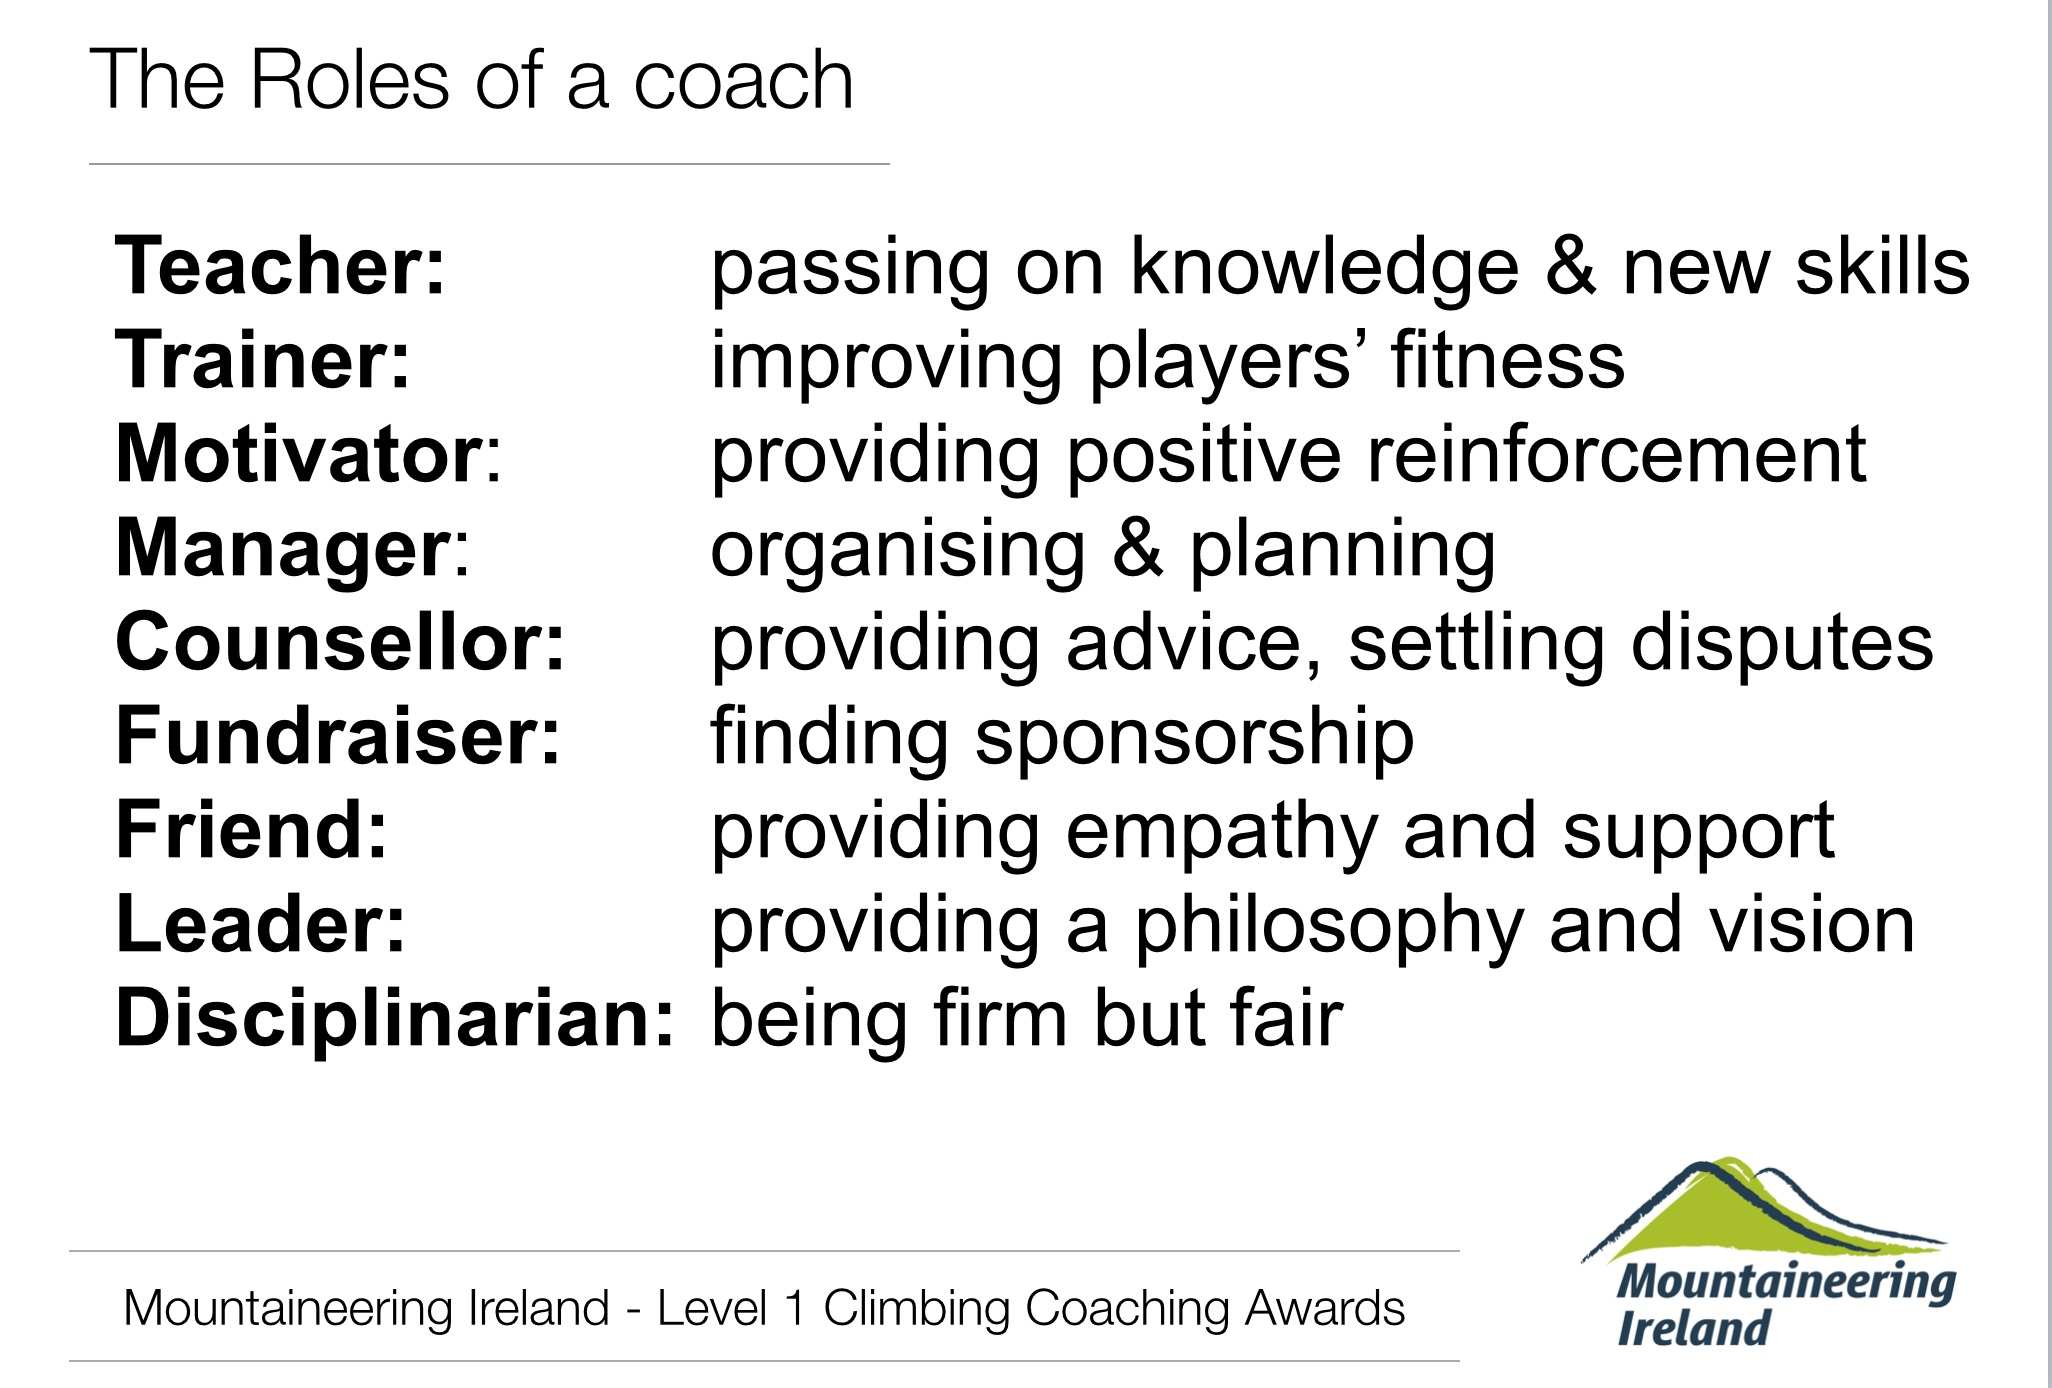 A small list of the roles of a coach!